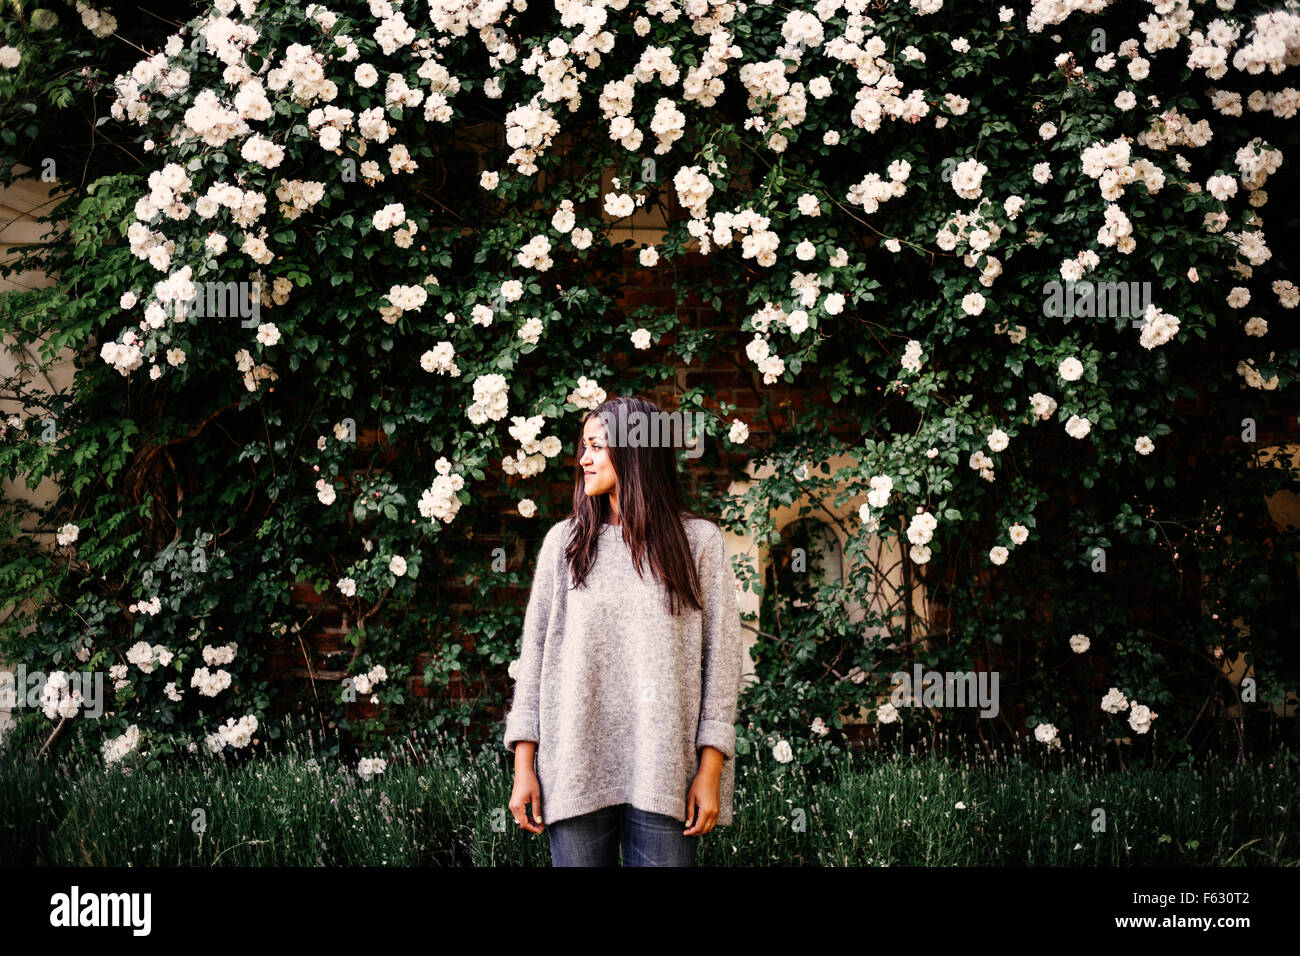 Young woman standing against tree bearing white flowers in park - Stock Image